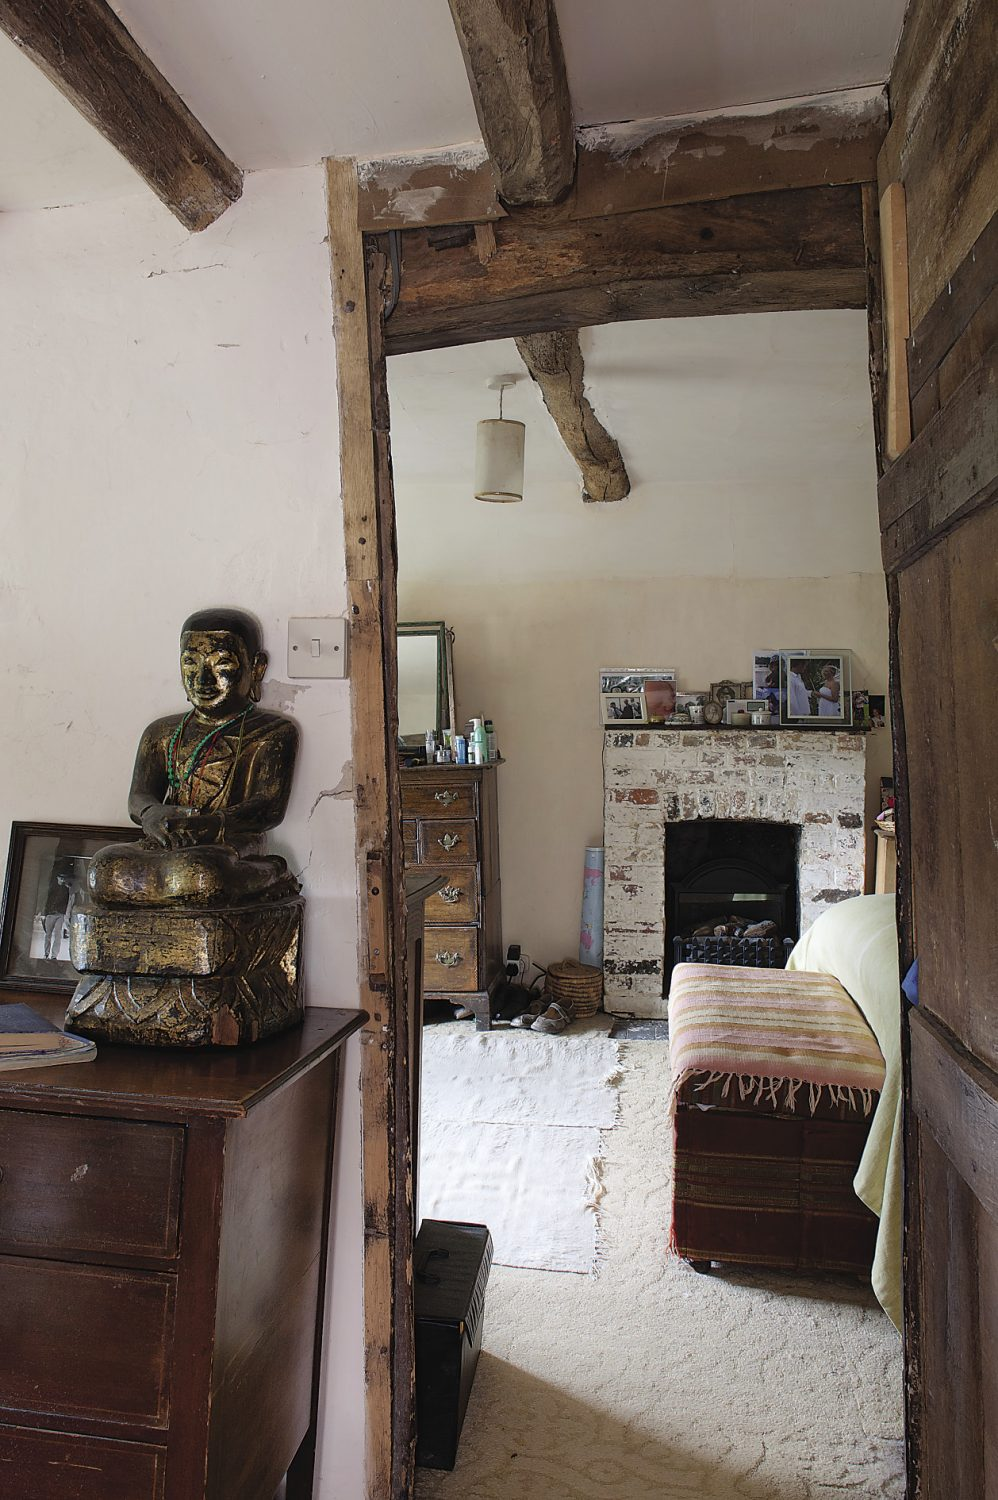 Upstairs, past a visiting statue of the Buddha, is the main bedroom, its rollercoaster of a floor testament to the building's movement through the ages